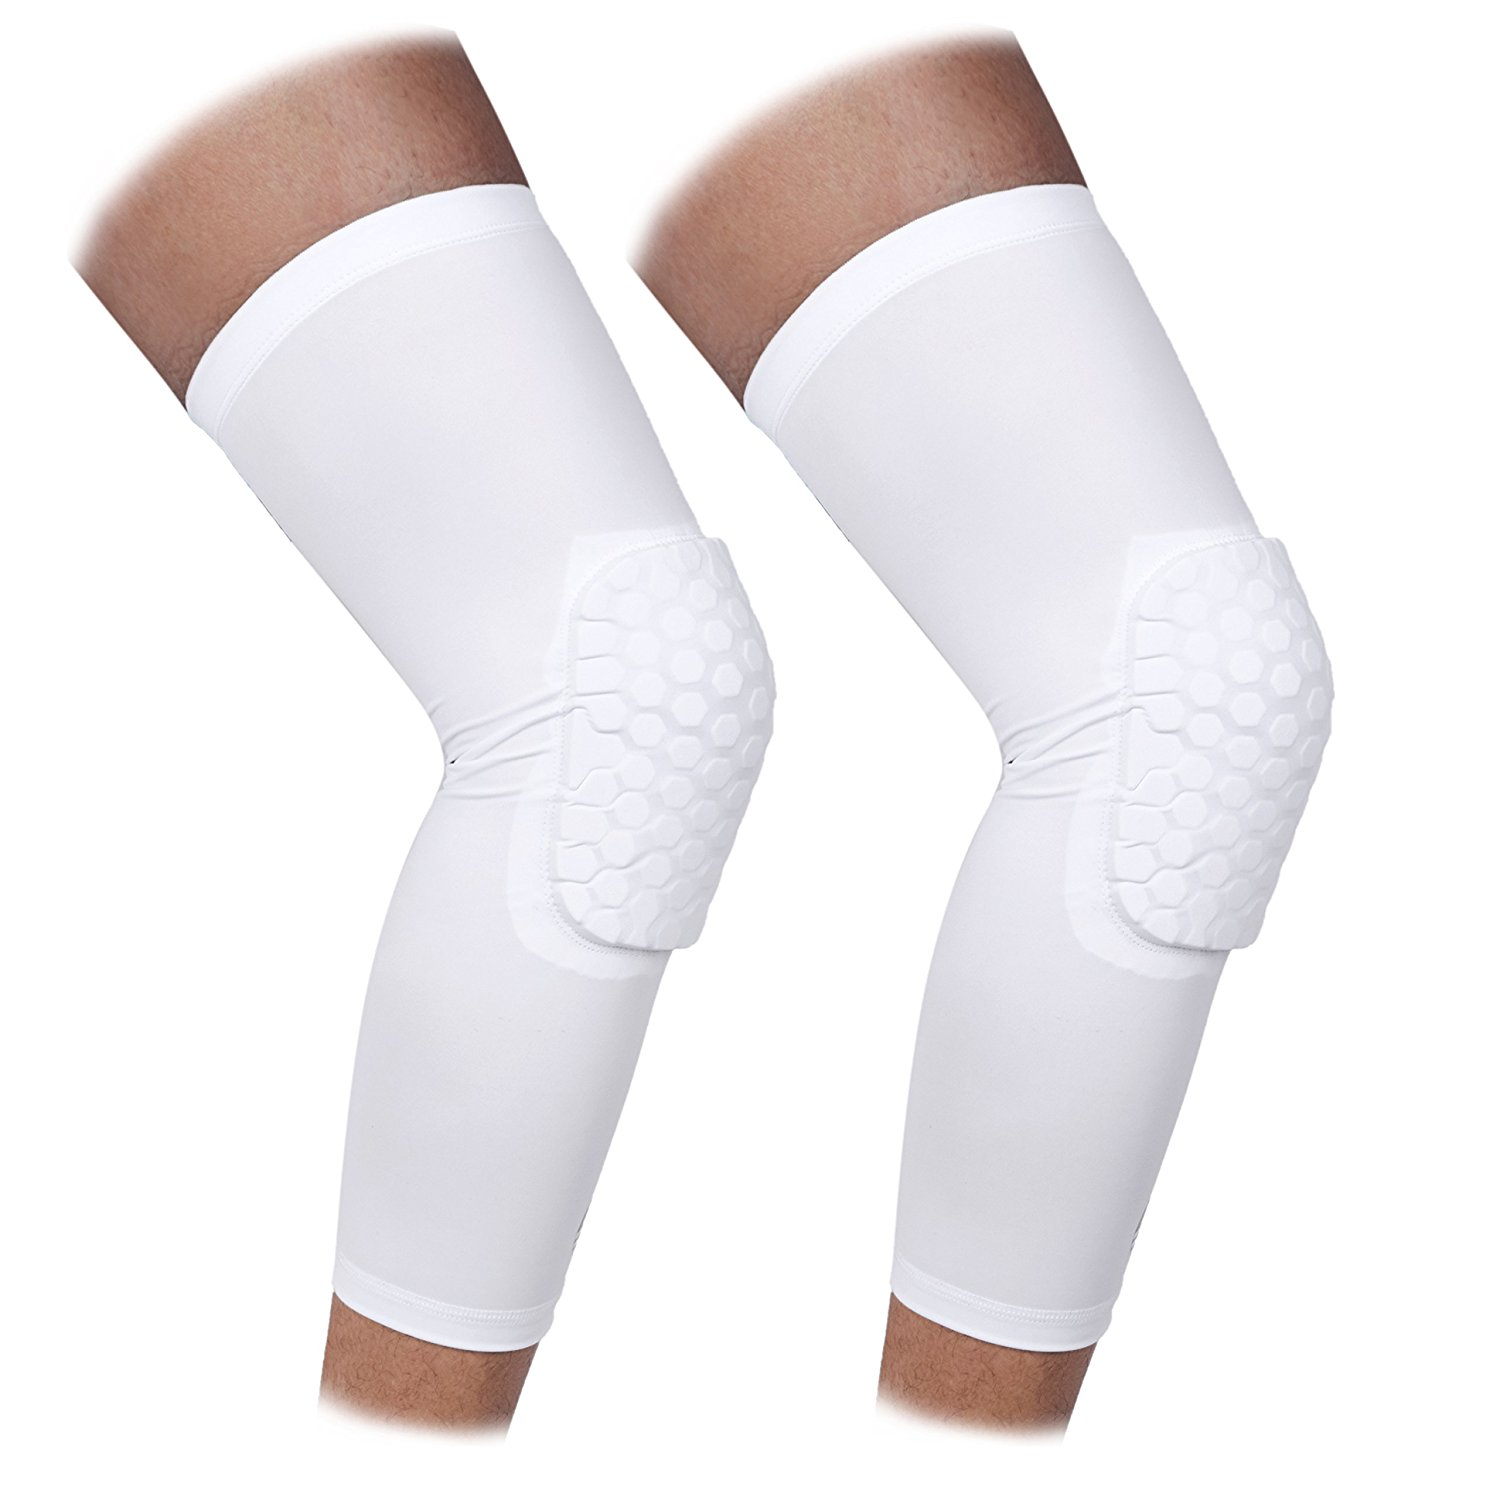 3-5 Days Delivery Knee Pads Honeycomb Compression Long Leg Sleeve Protector Gear Knee Pads Crashproof Antislip Basketball Protective Pad Support Guard